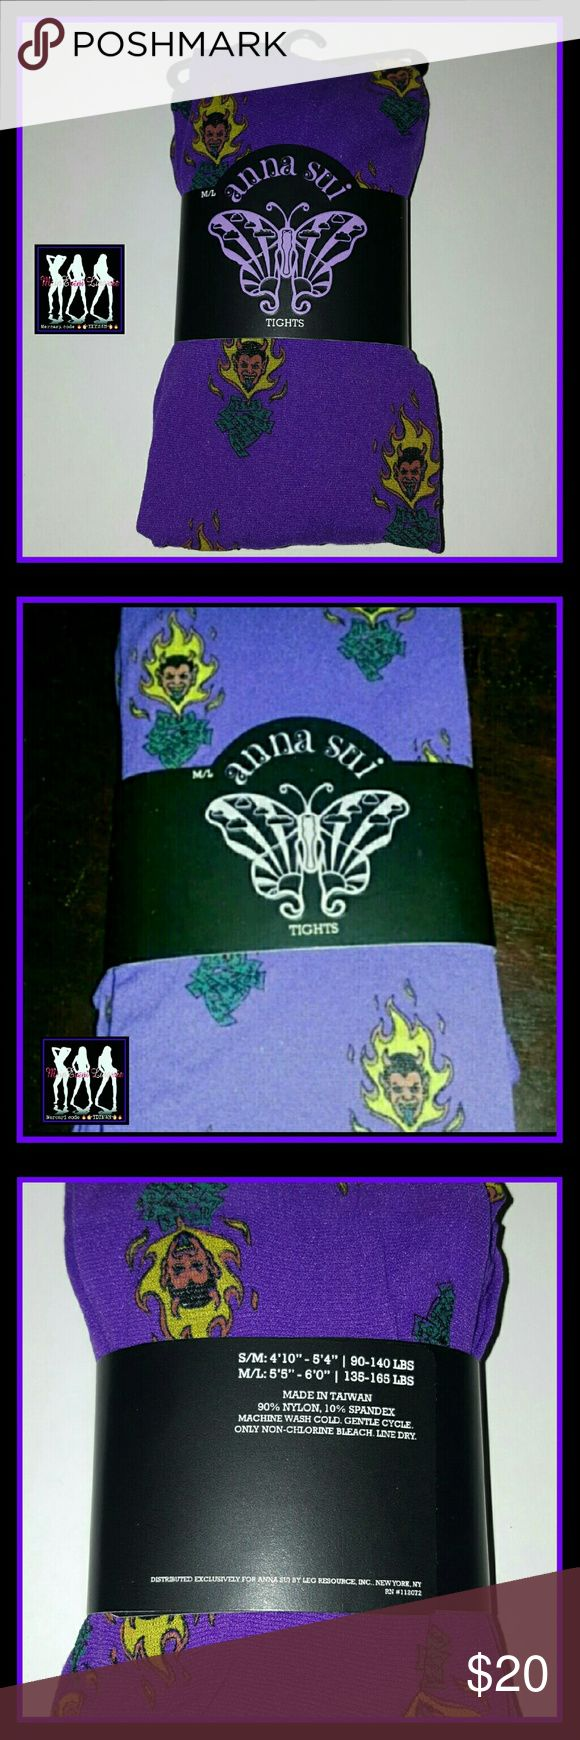 Anna Sui Halloween Novelty Tights (m/l) Brand New and never worn. Purple tights w/ Devils on them. Size medium/large Anna Sui Accessories Hosiery & Socks